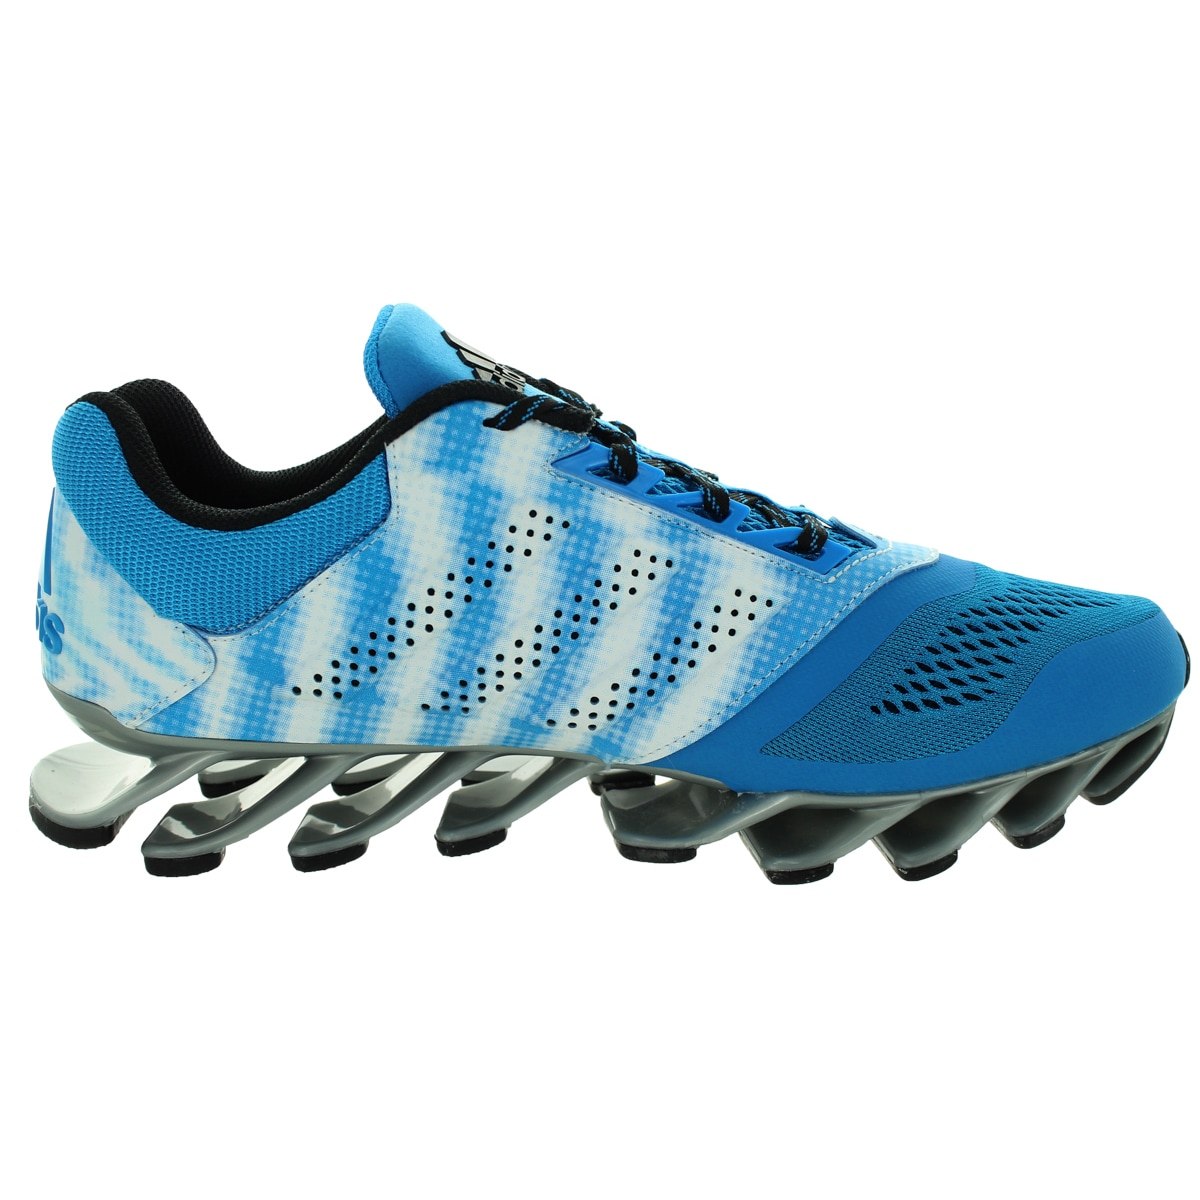 superior quality 06a5c 7752e Adidas Men's Springblade Drive 2 M Blue/White Running Shoe